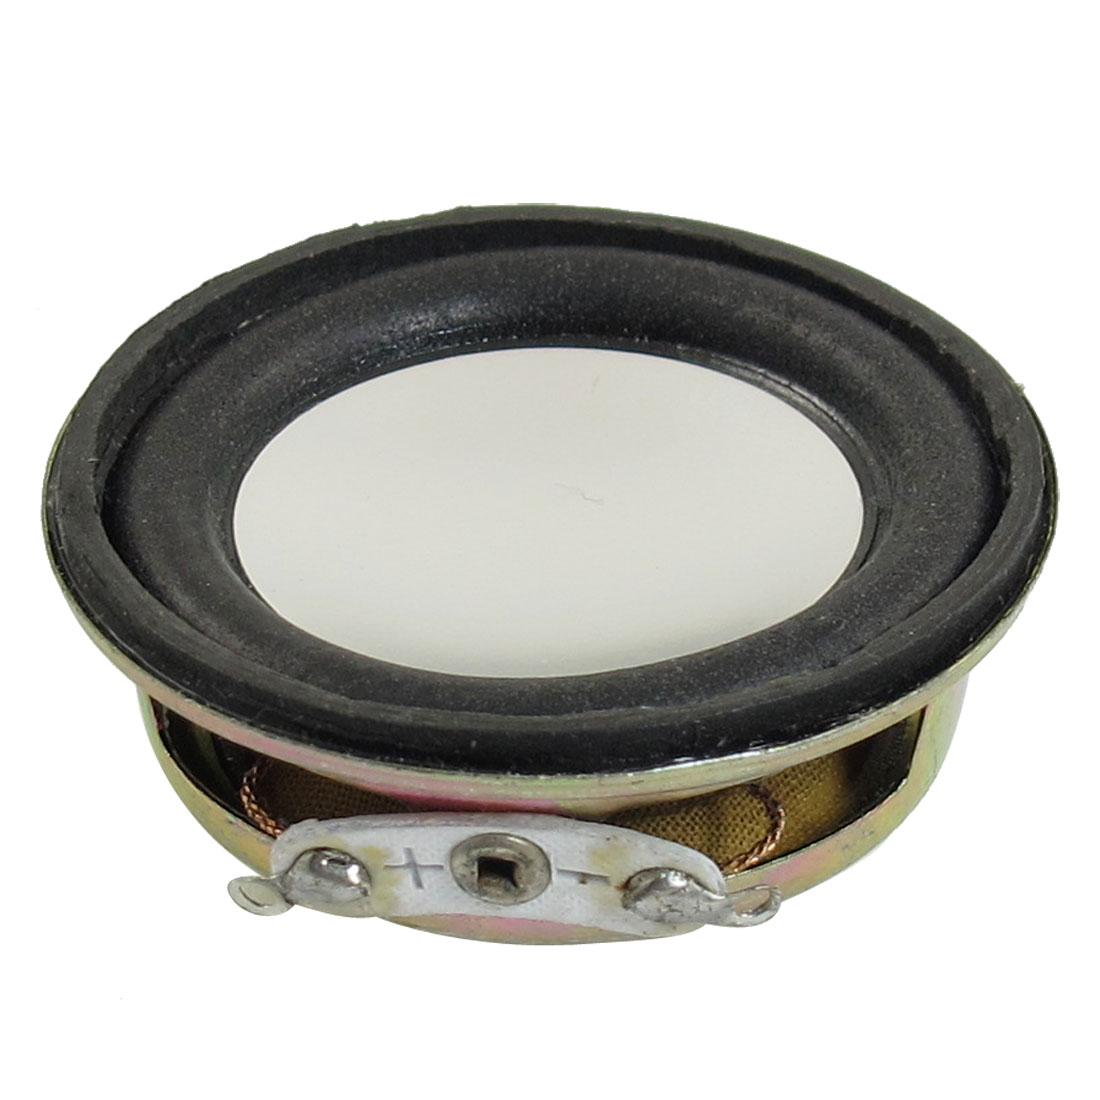 Replacement Part 40mm Diameter Round Internal Magnet Speaker 4 Ohm 2W